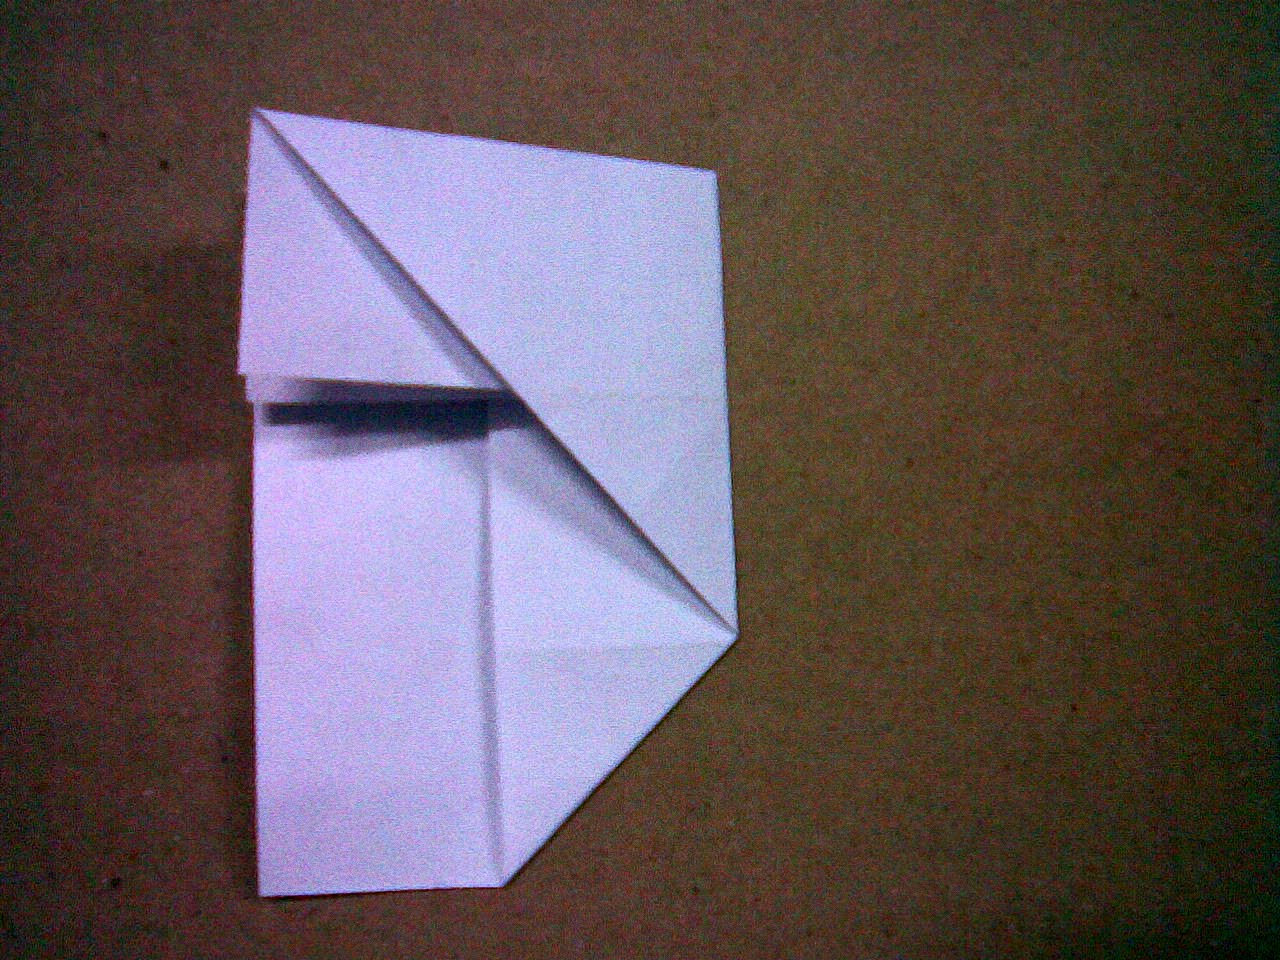 make box howto ,diy box lid,make box with lid,paper box with cover,cover box paper